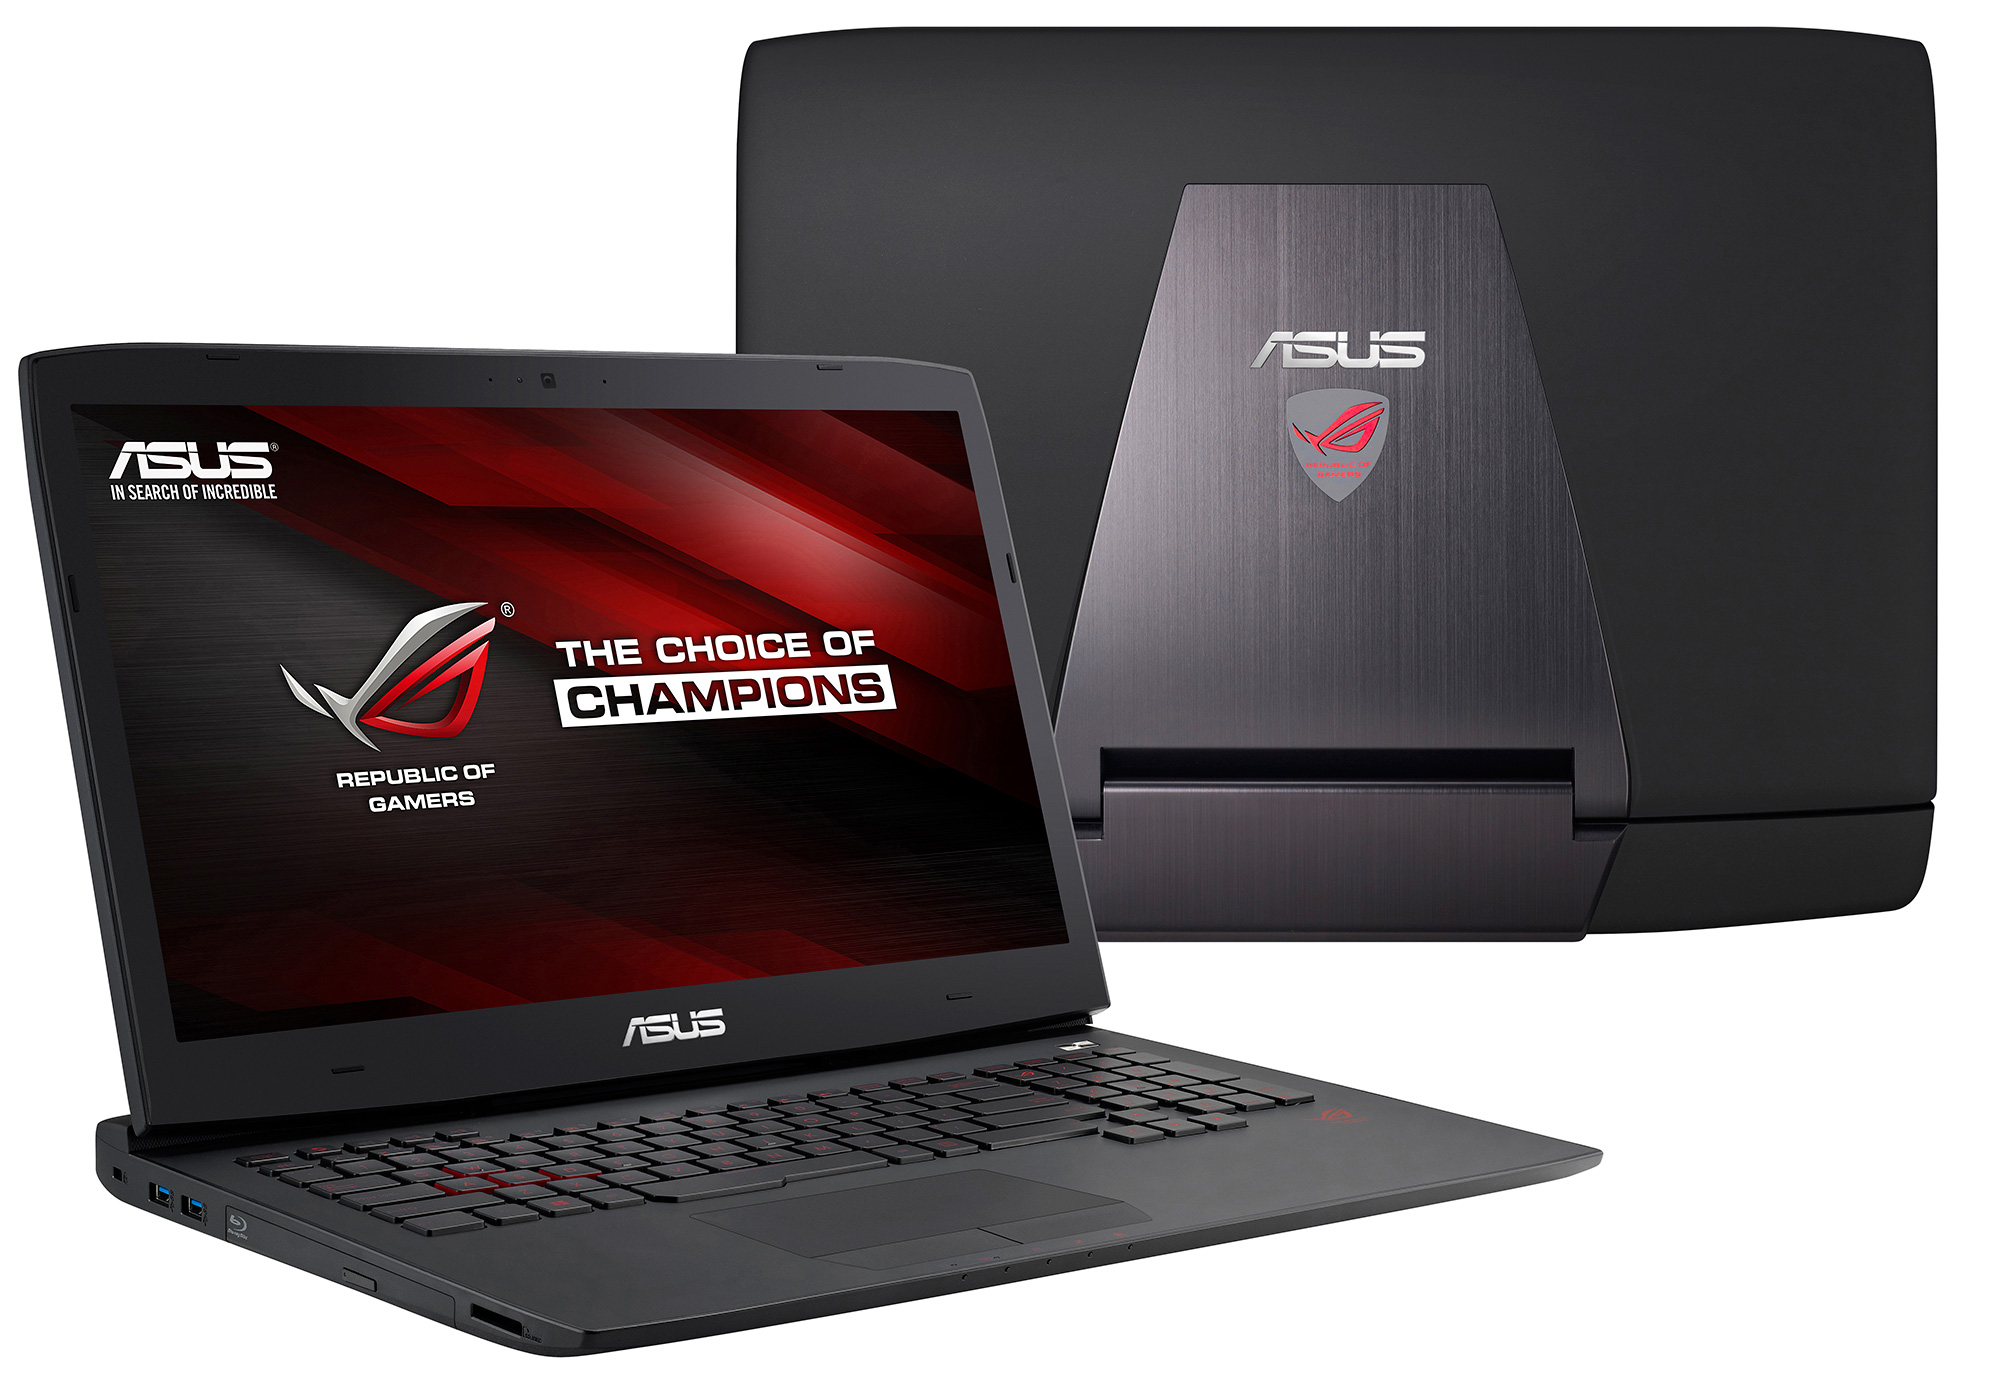 asus rog announces g751 gaming laptop with gtx 900m series